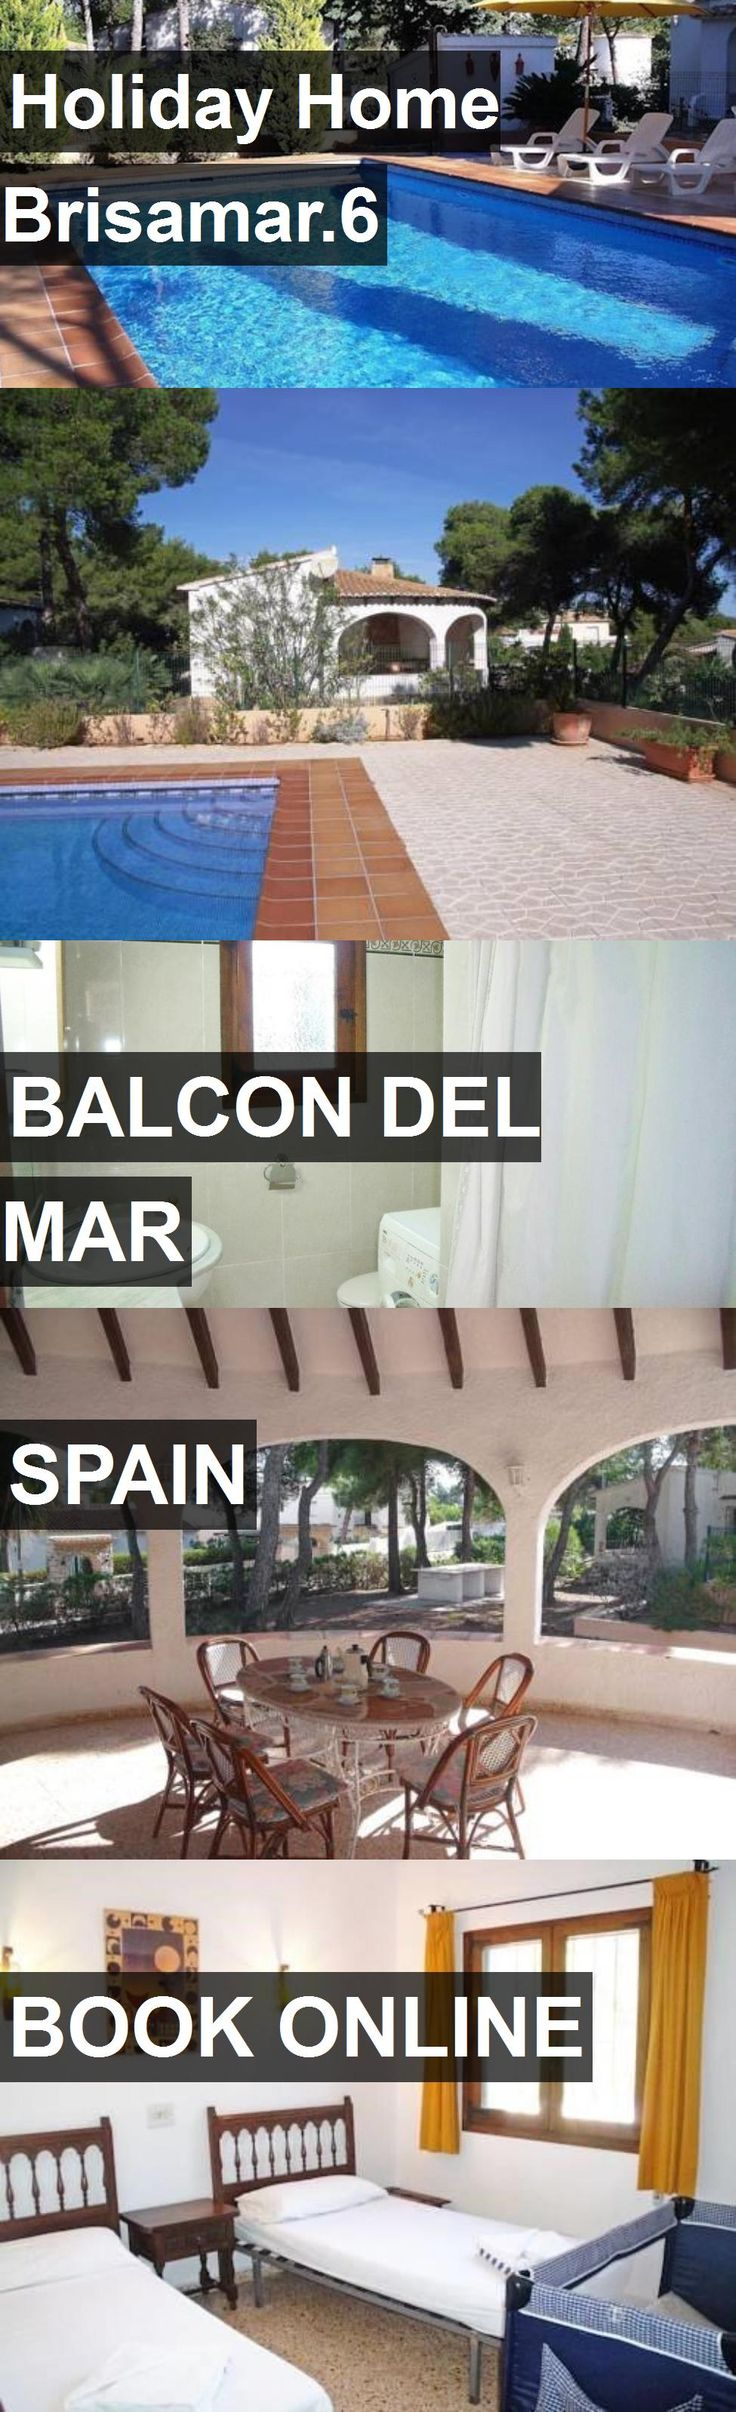 Hotel Holiday Home Brisamar.6 in Balcon del Mar, Spain. For more information, photos, reviews and best prices please follow the link. #Spain #BalcondelMar #travel #vacation #hotel